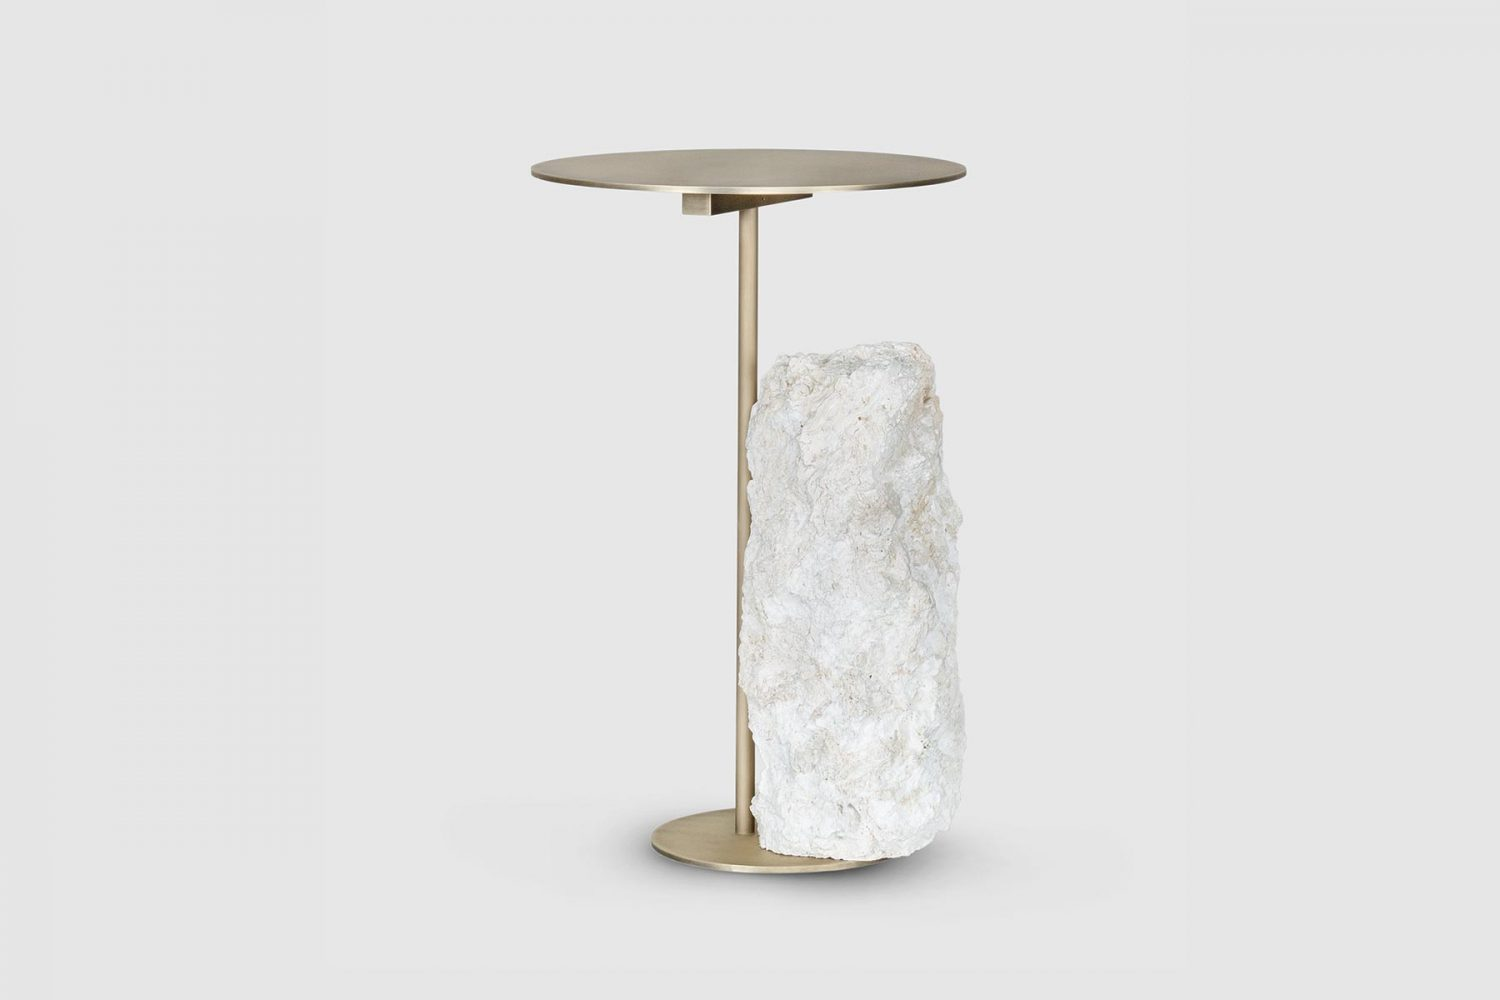 Pico-G703148-Side-Table-01